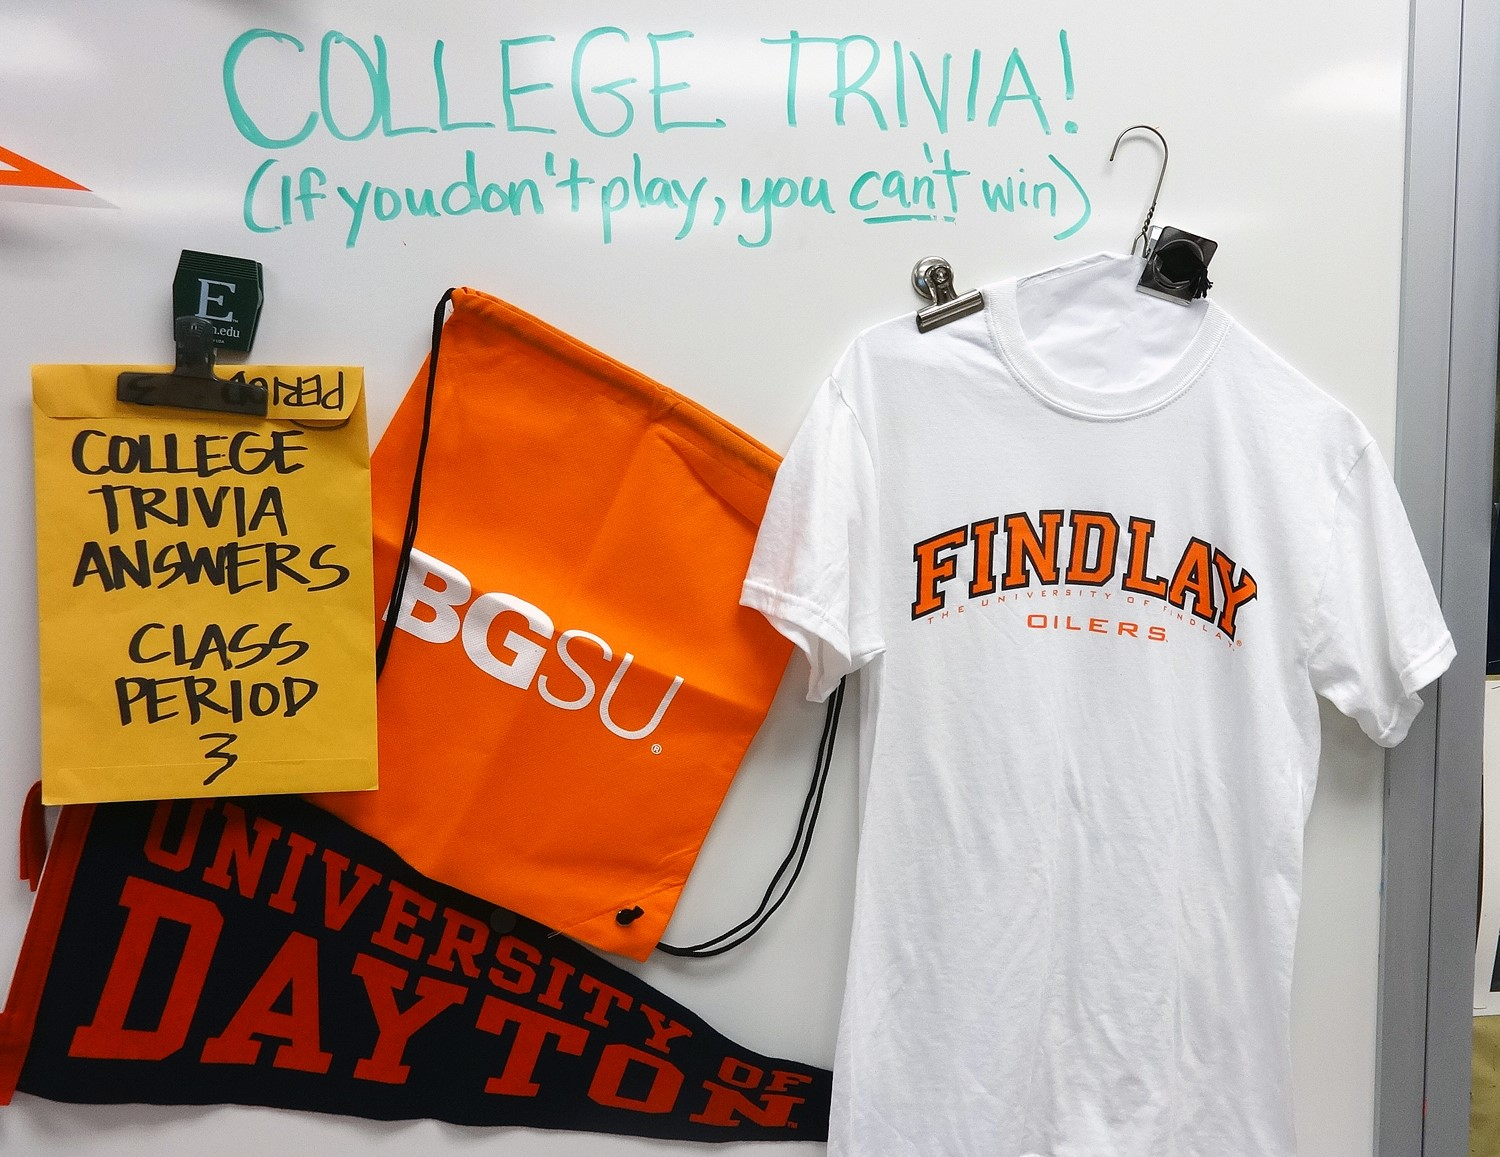 College Trivia is also a part of 3C's -- a chance to win cool donated college gear